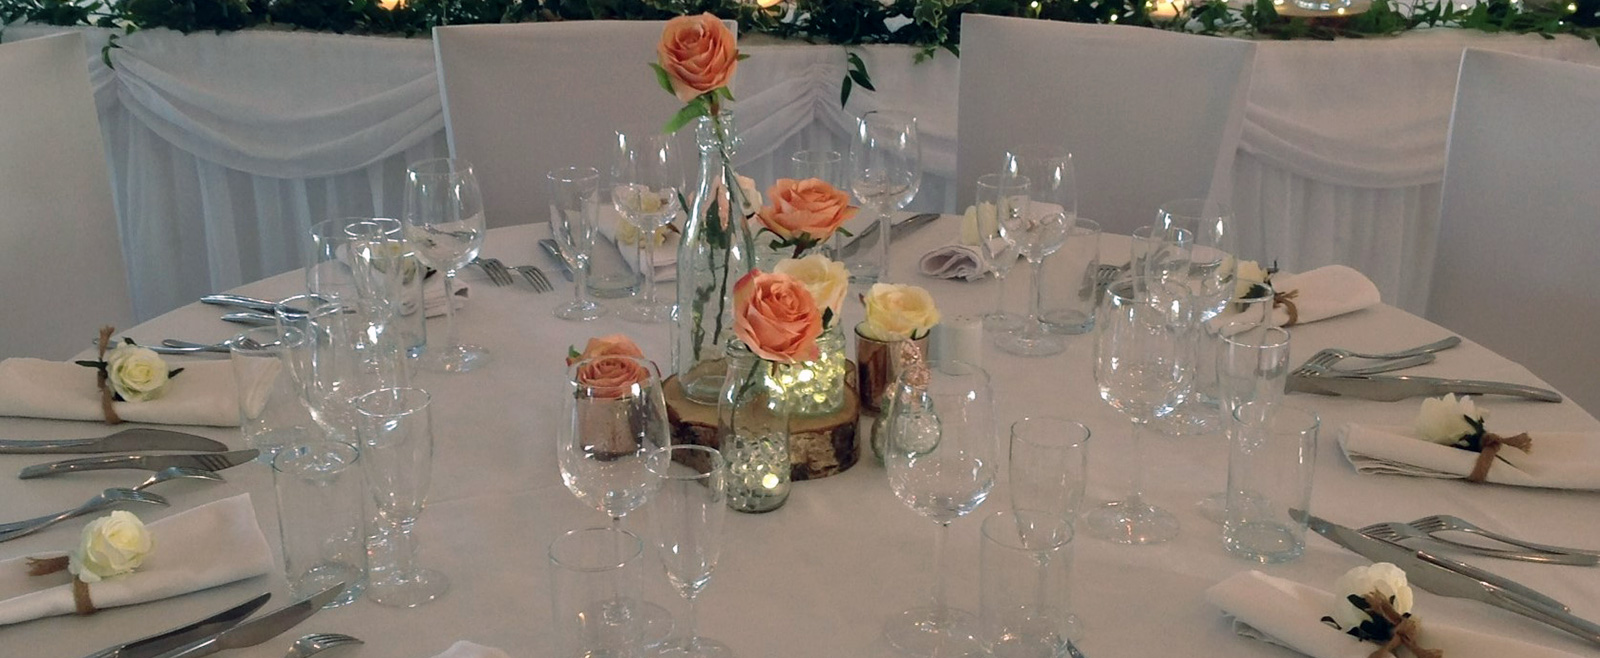 Wedding Venue Styling - Table Centrepieces